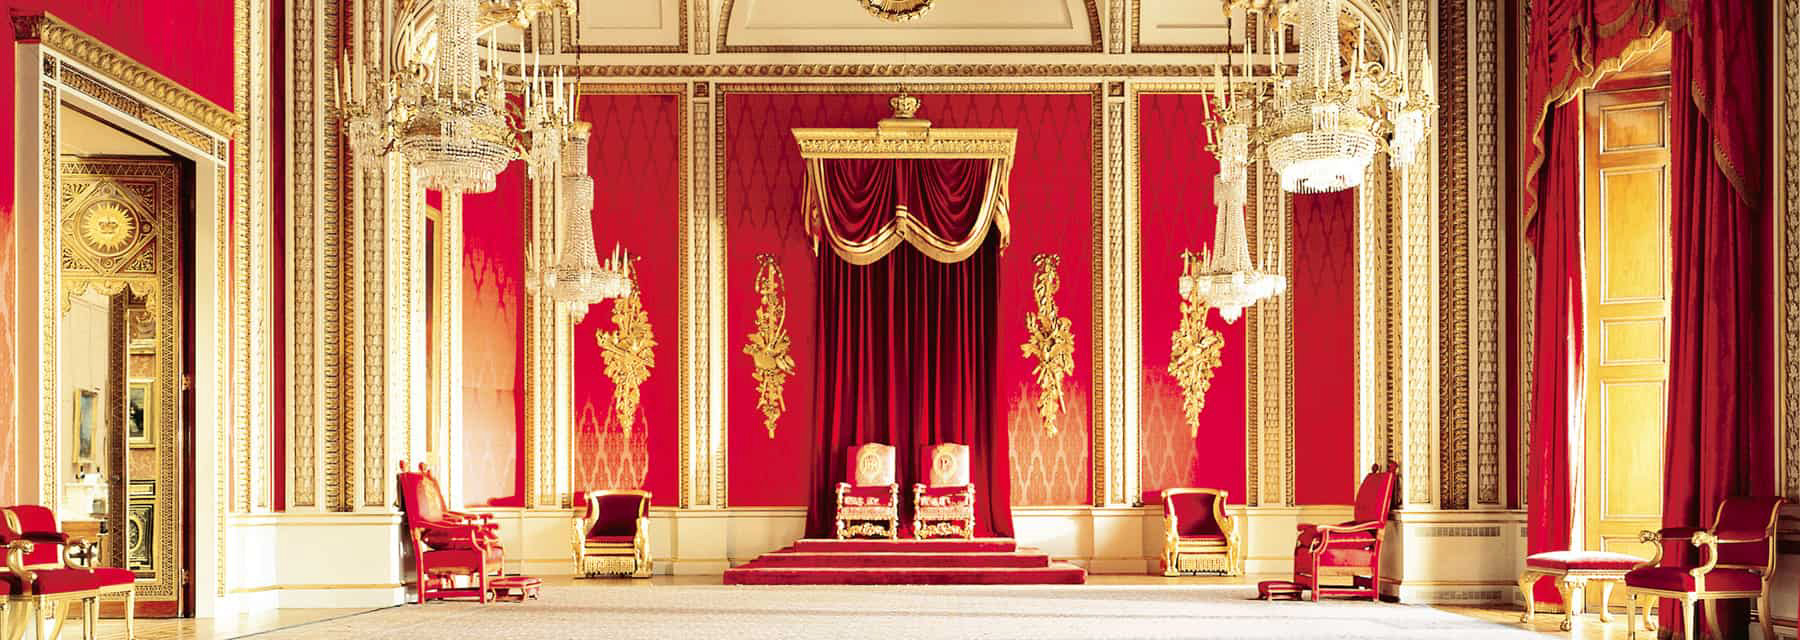 buckingham palace state rooms tour